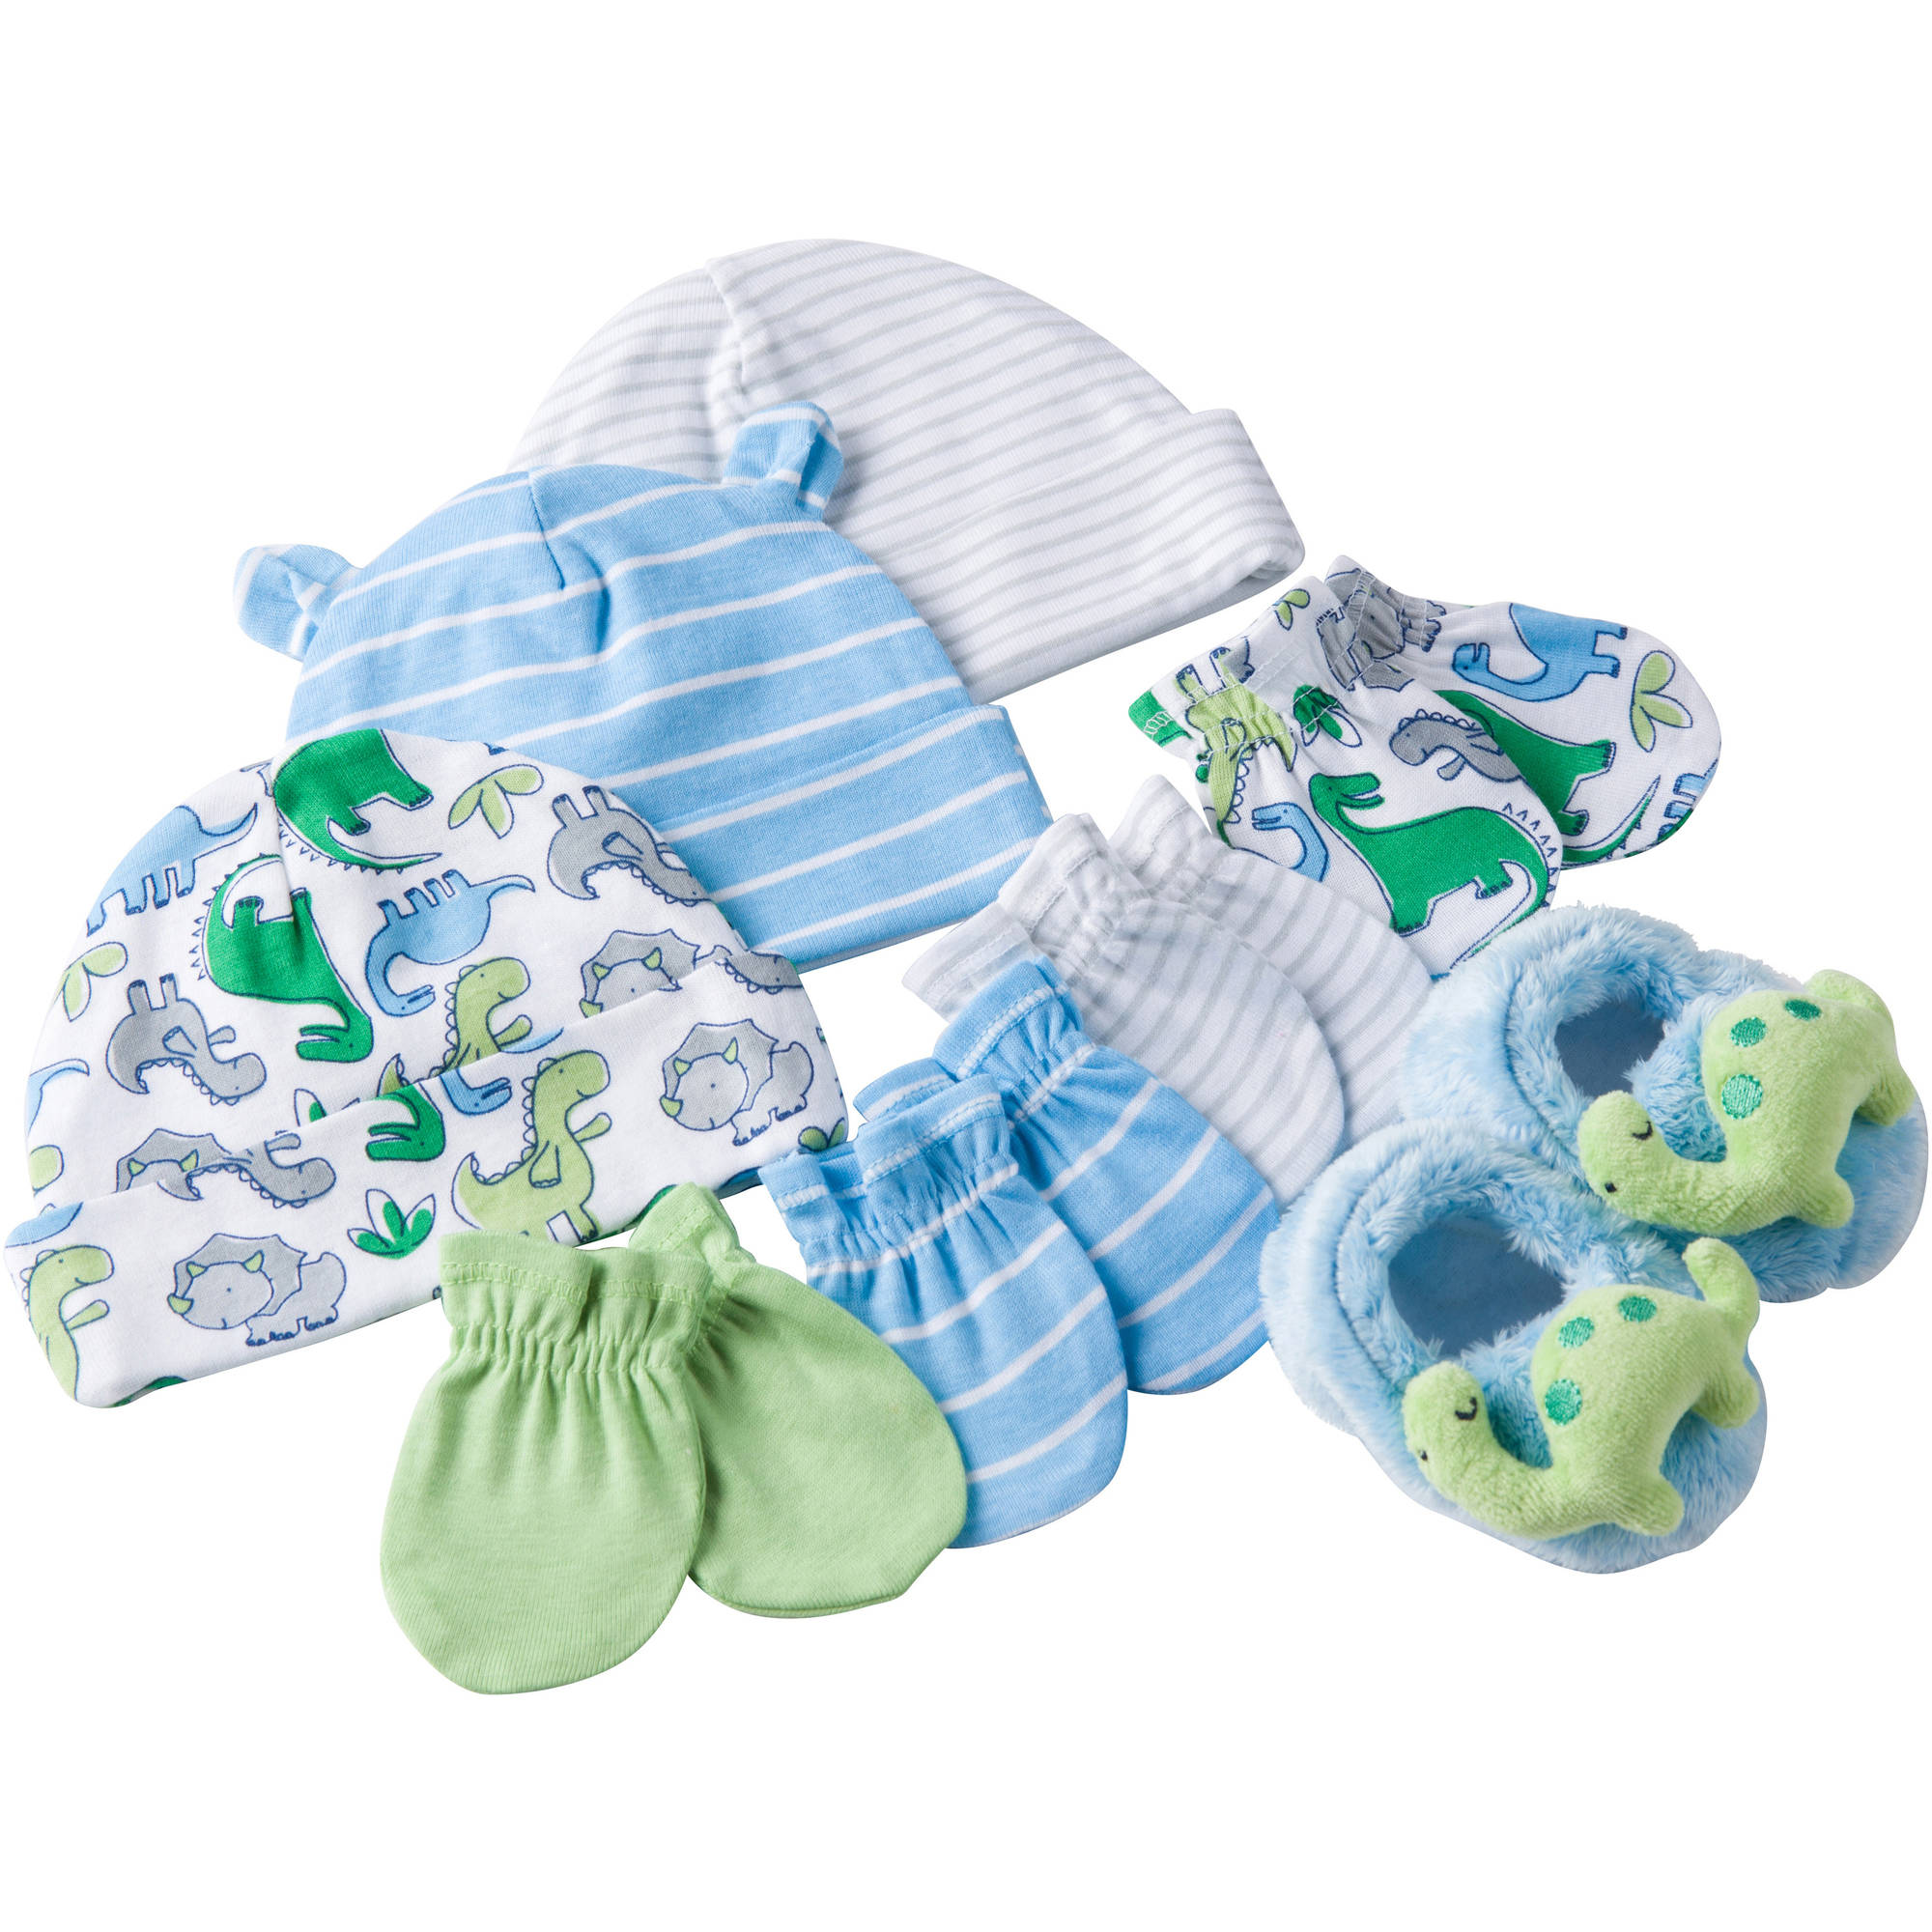 Gerber Newborn Baby Boy Caps, Mittens and Booties Accessory Baby Shower Gift Set, 8-Piece